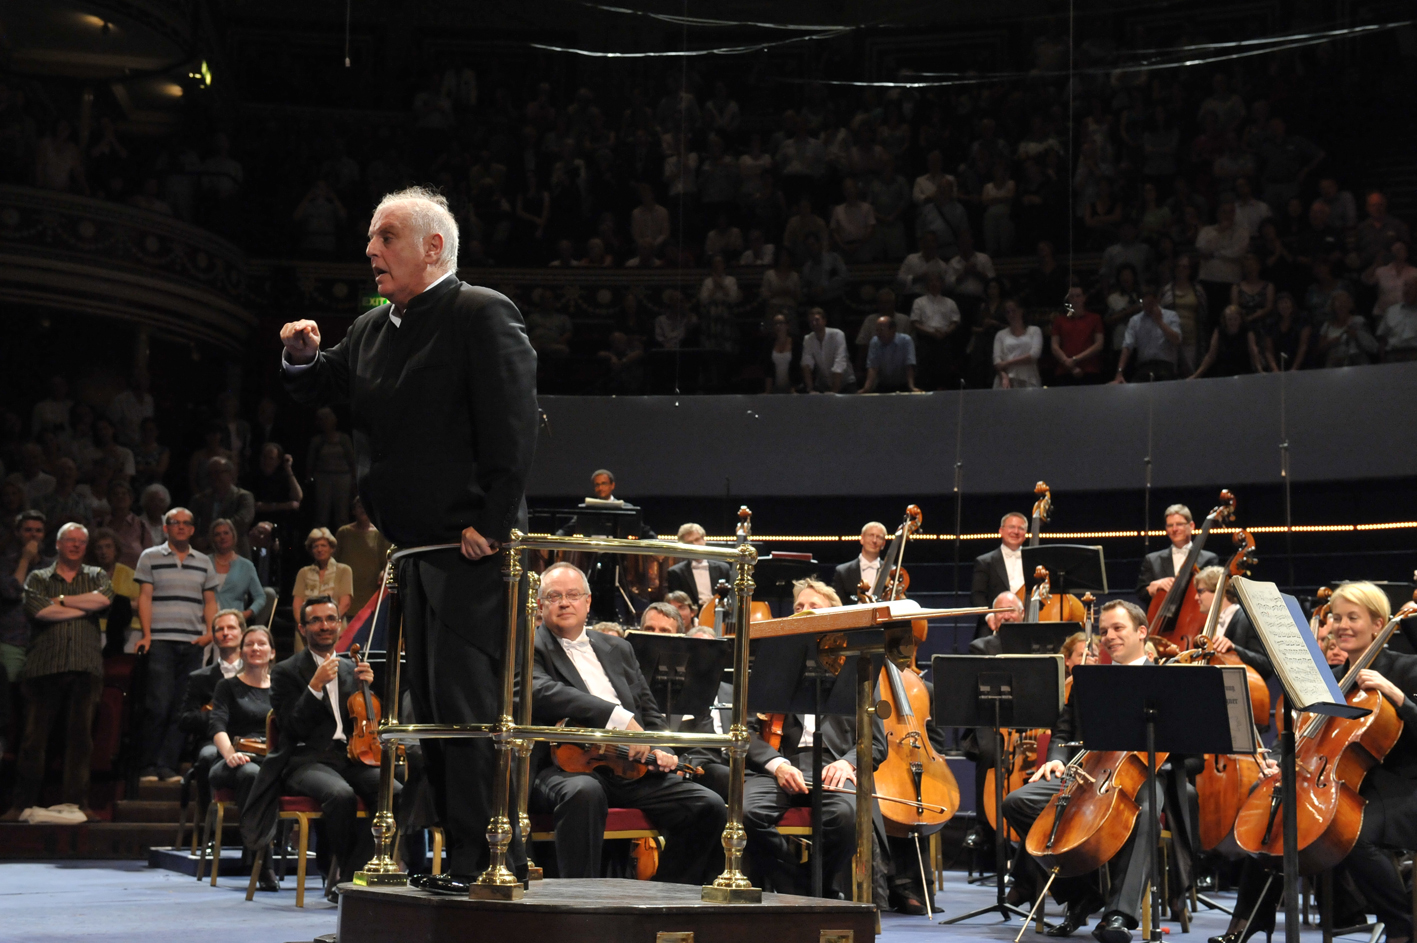 Barenboim at the Proms by Chris Christodoulou